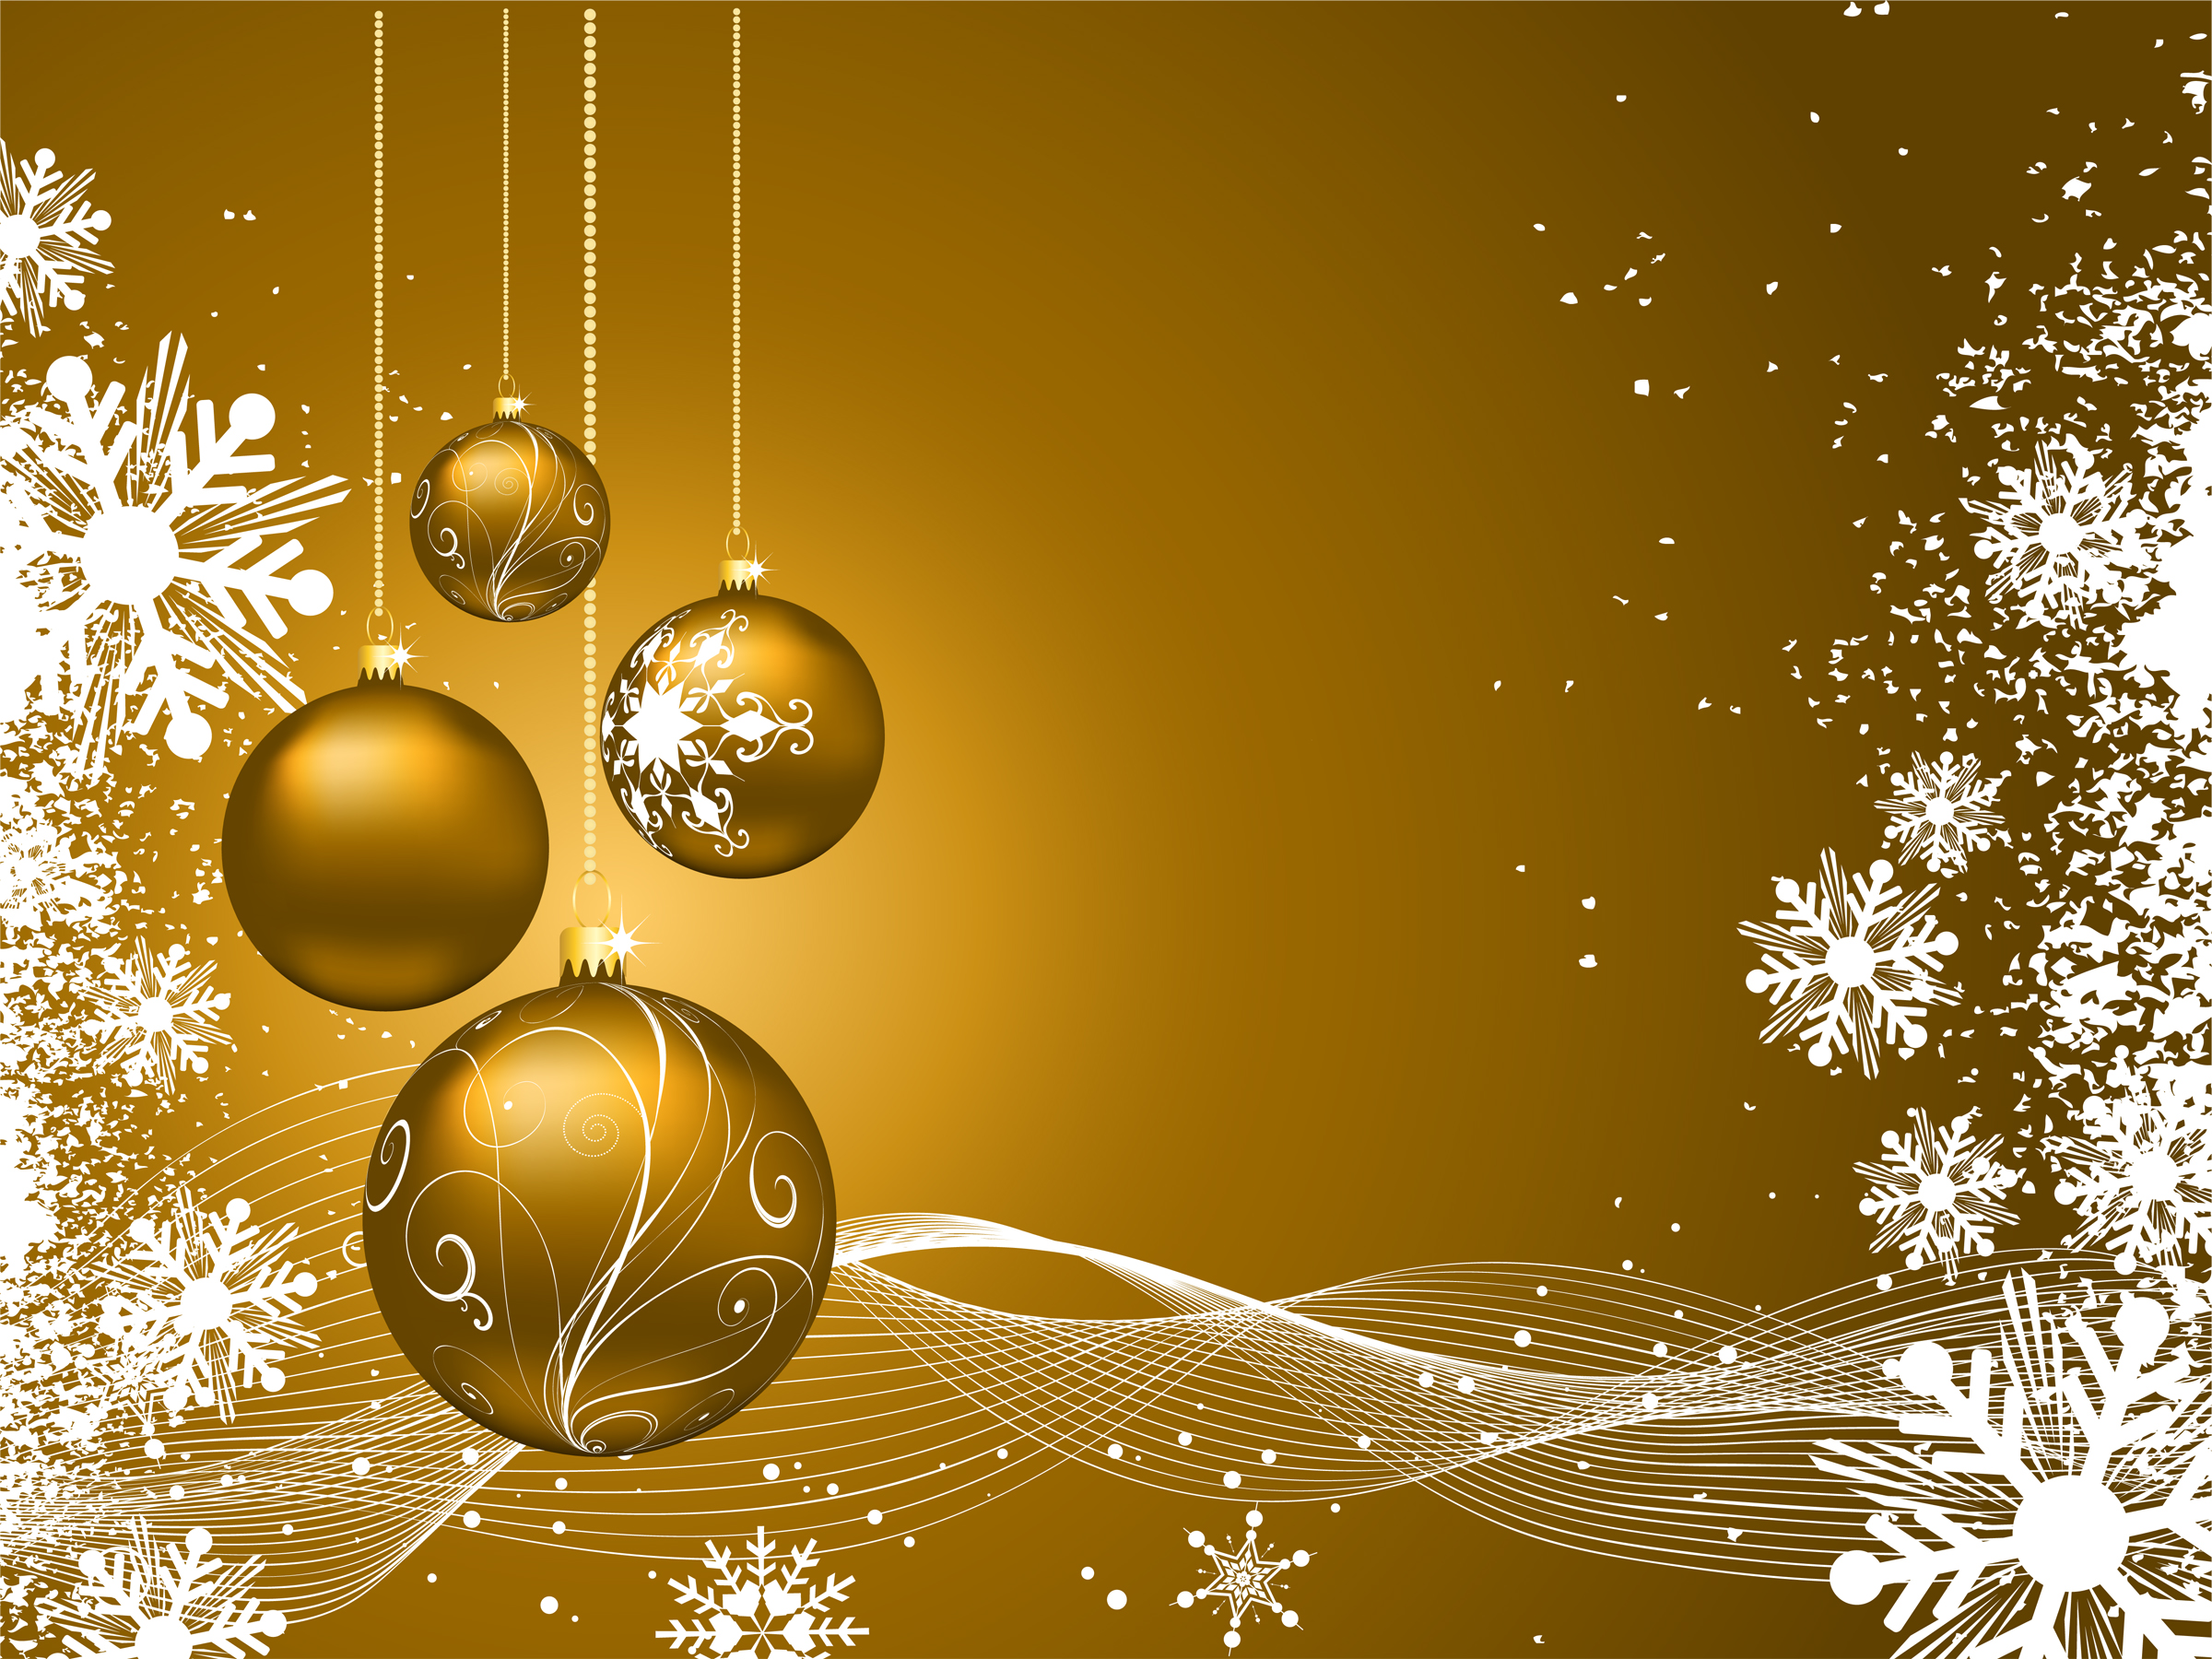 Free hd christmas lights wallpapers pixelstalk net - Free christmas images for desktop wallpaper ...